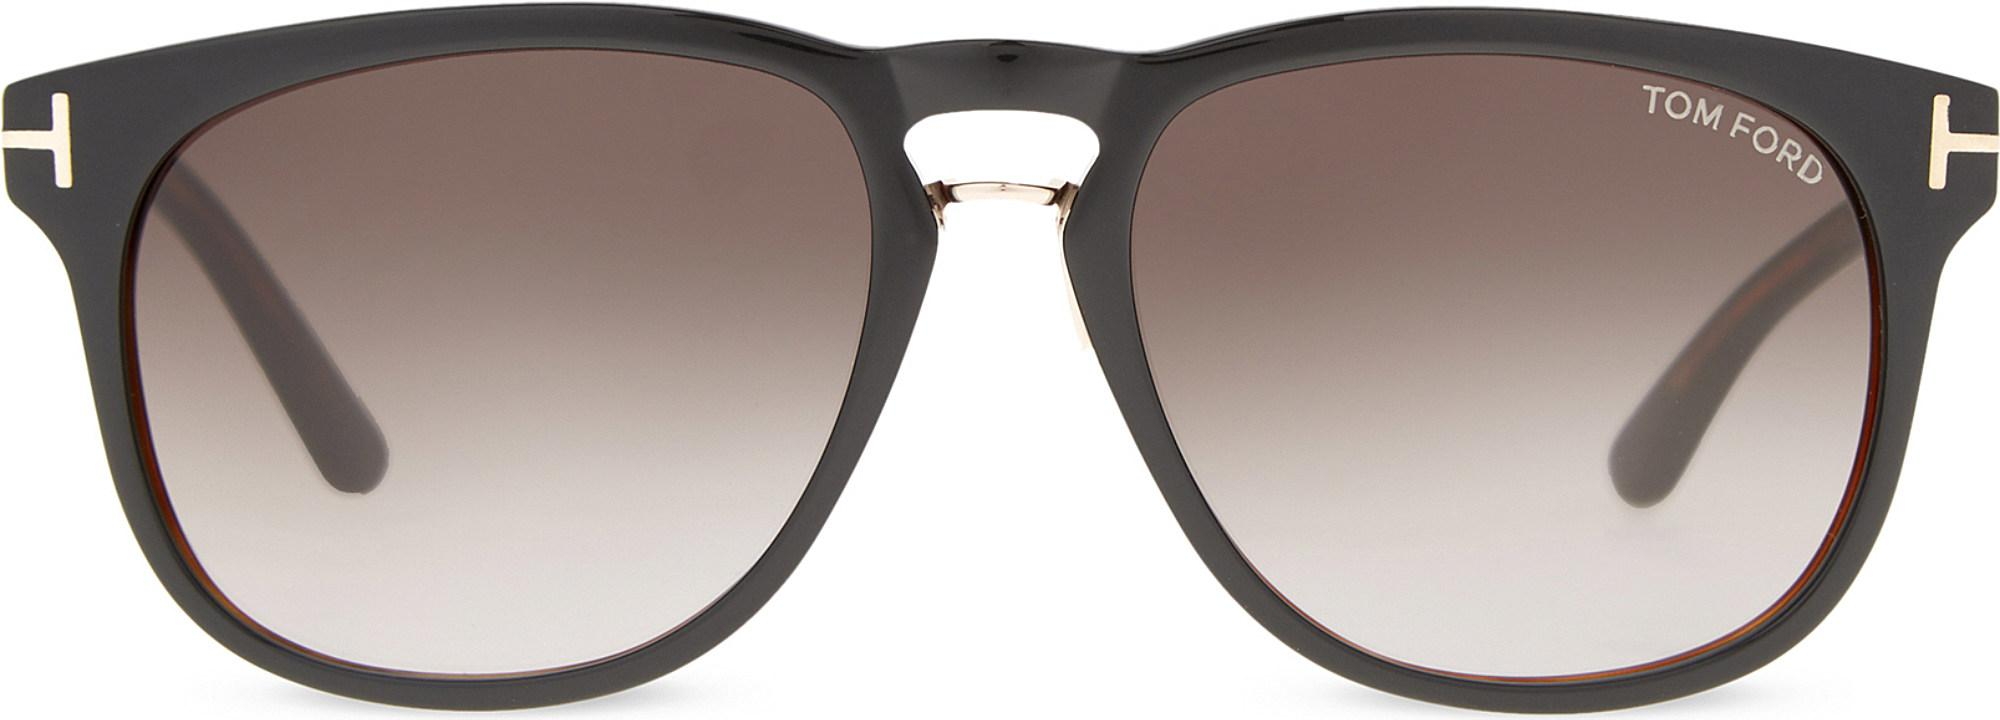 4d90ce78e5f Tom Ford Franklin Tf346 Square-frame Sunglasses in Brown for Men - Lyst